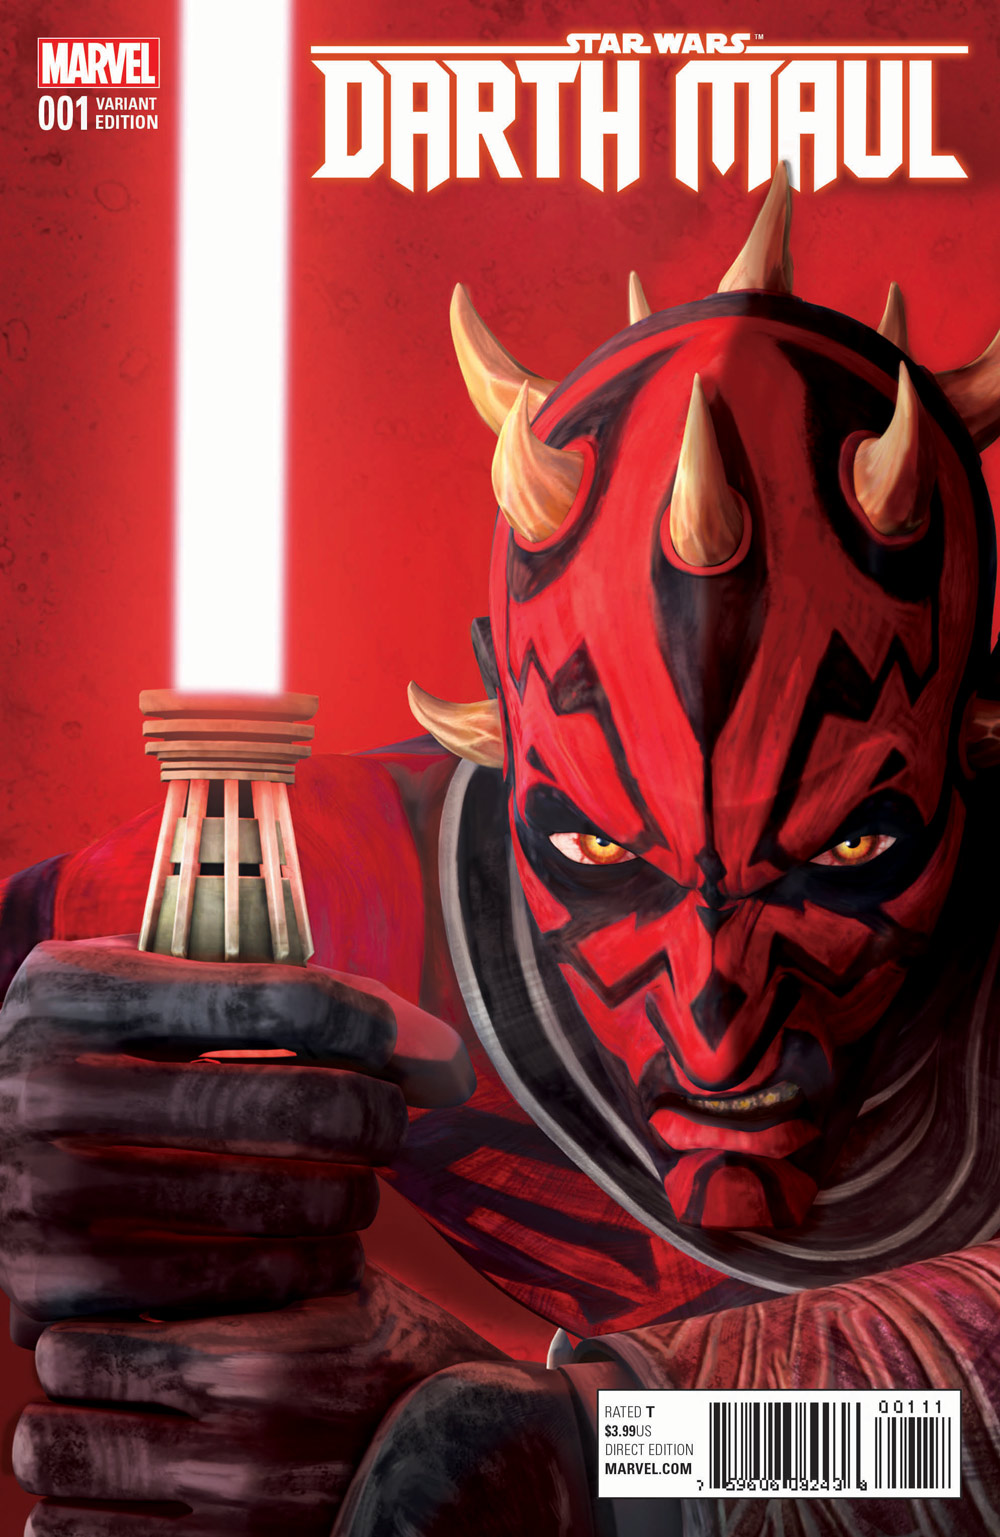 Darth-Maul-Star-Wars-Rebels-variant-cover